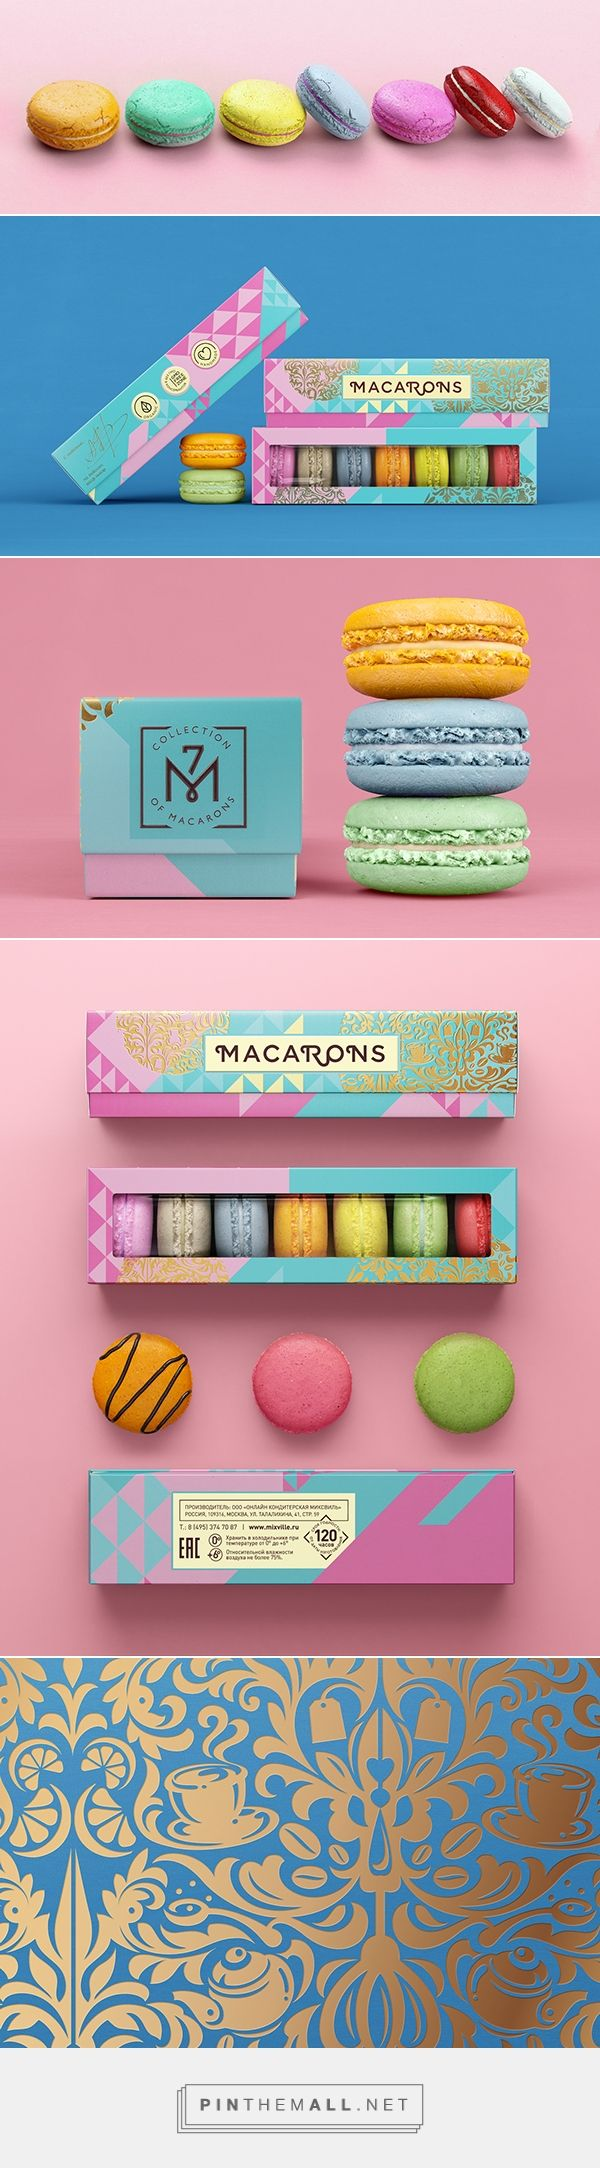 Mixville | Sweets packaging on Behance curated by Packaging Diva PD.